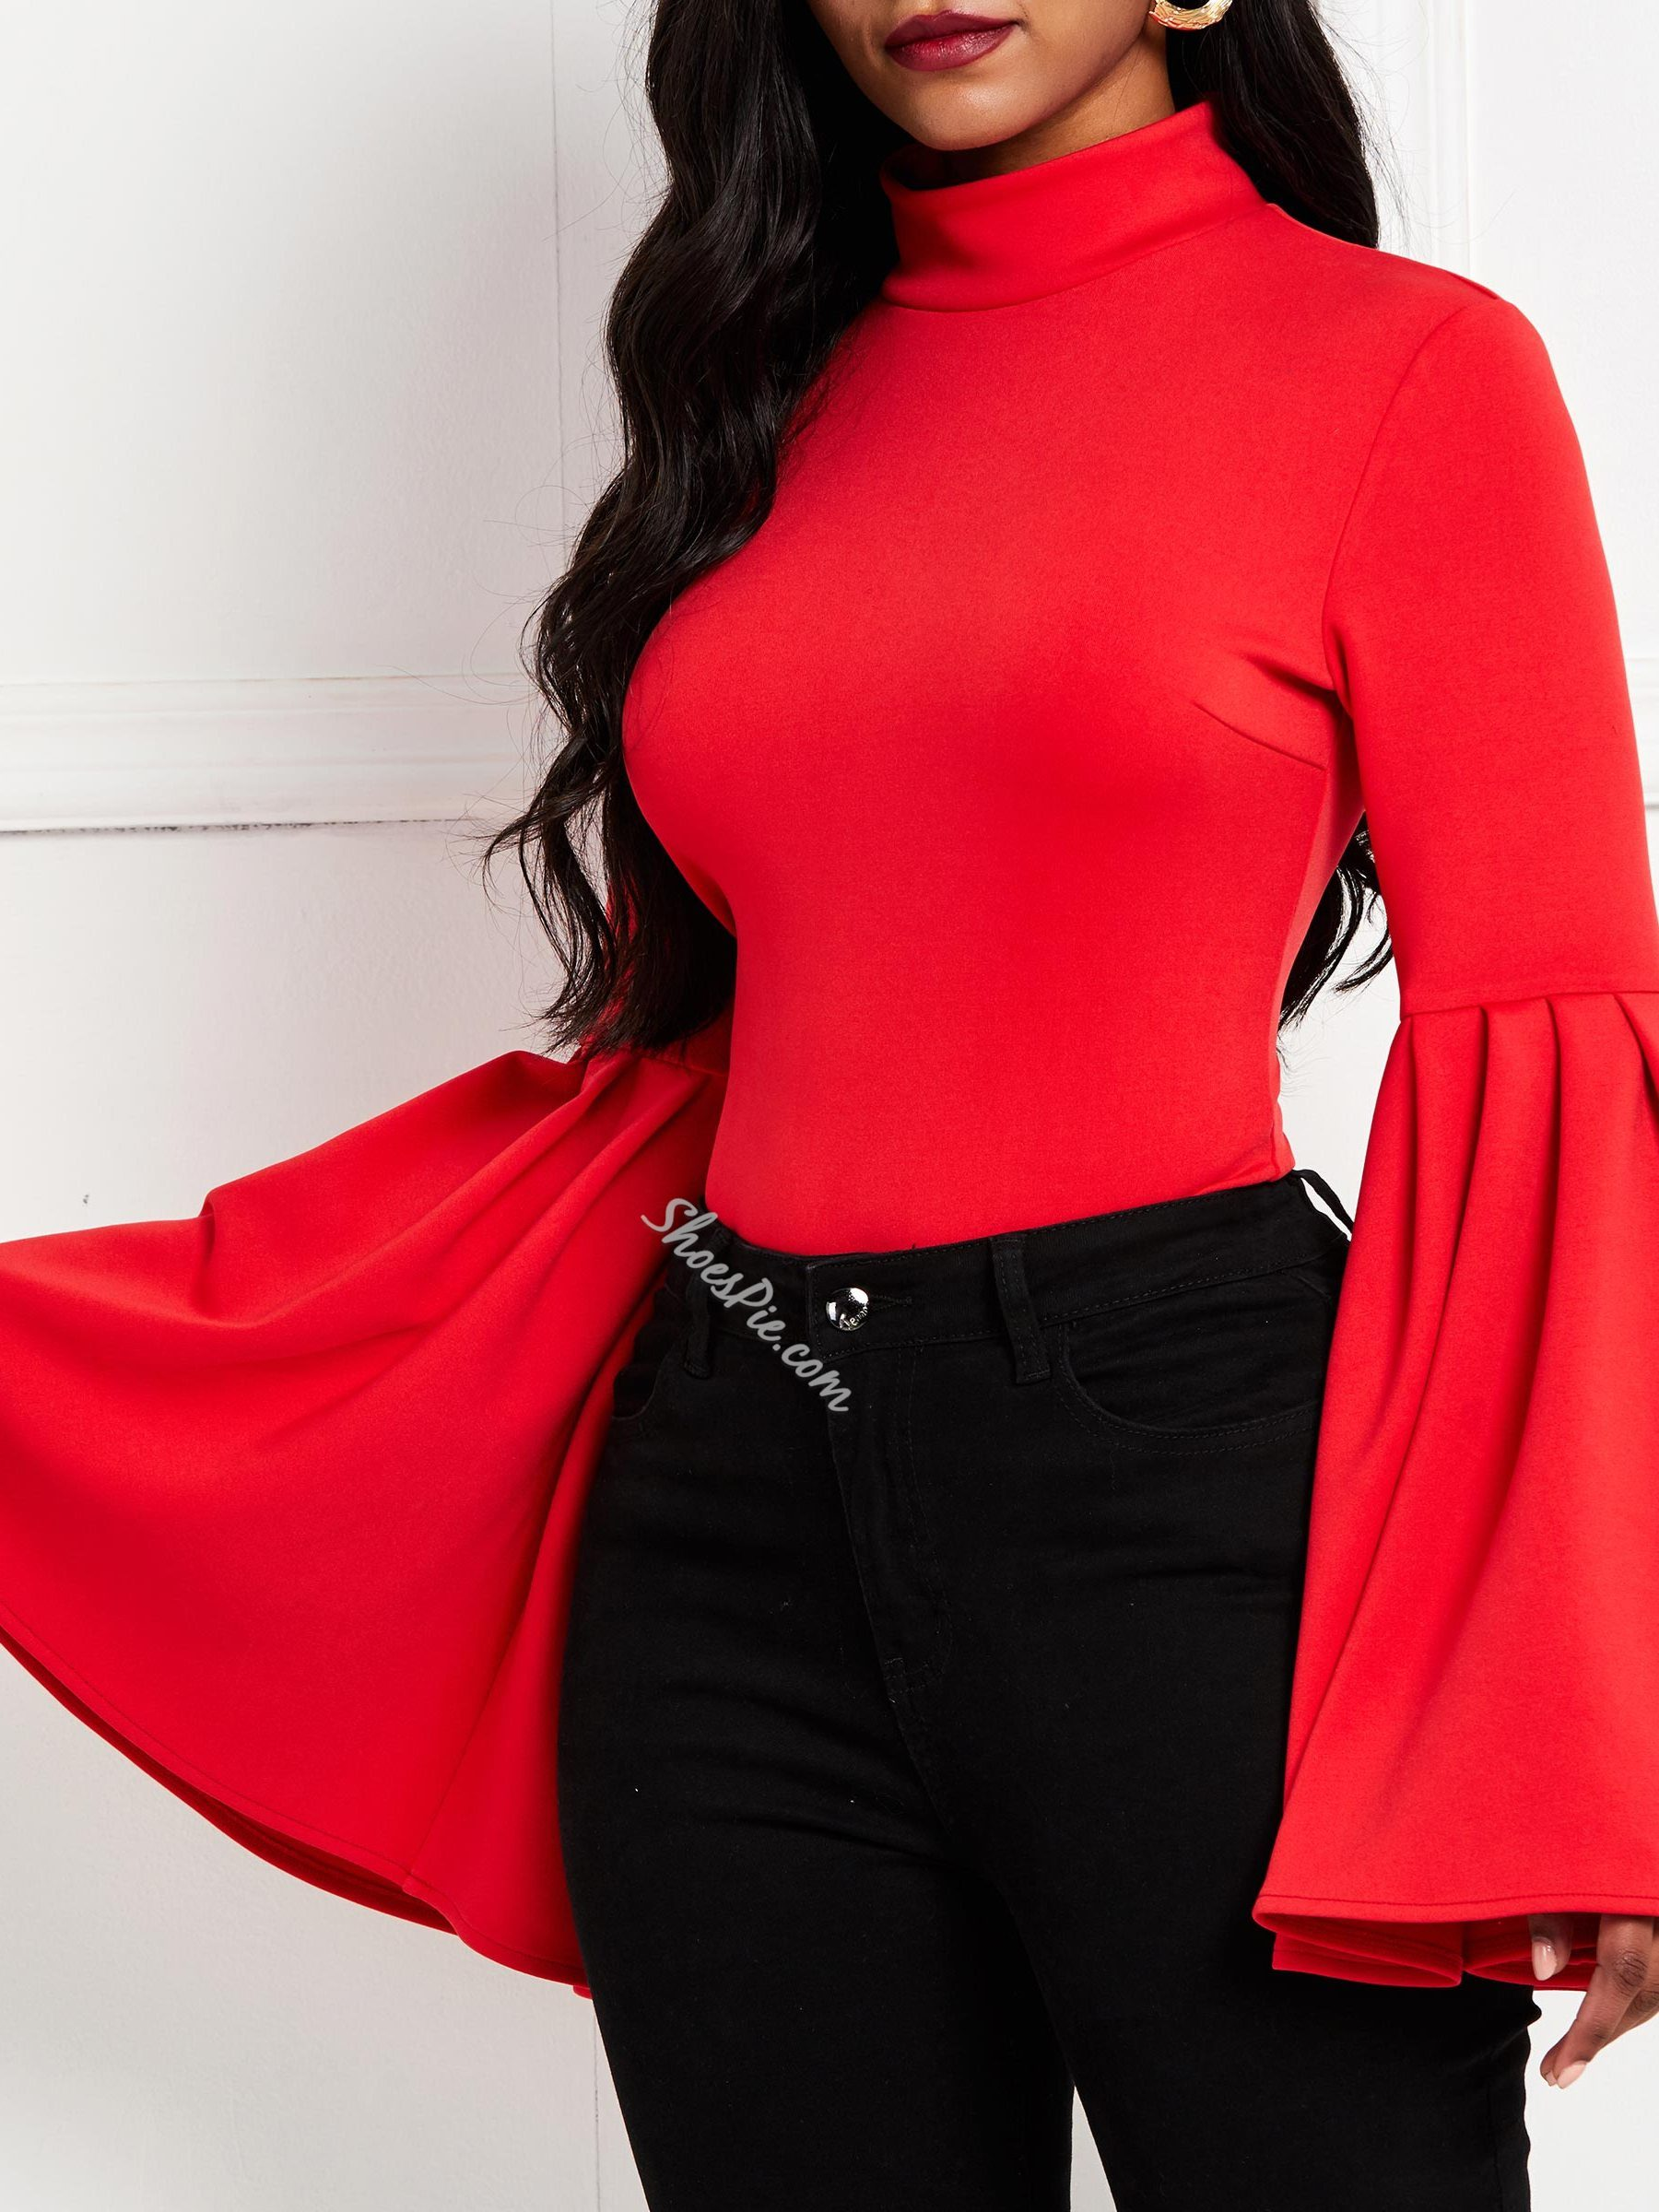 Flare Sleeve Plain Long Sleeve Women's Blouse